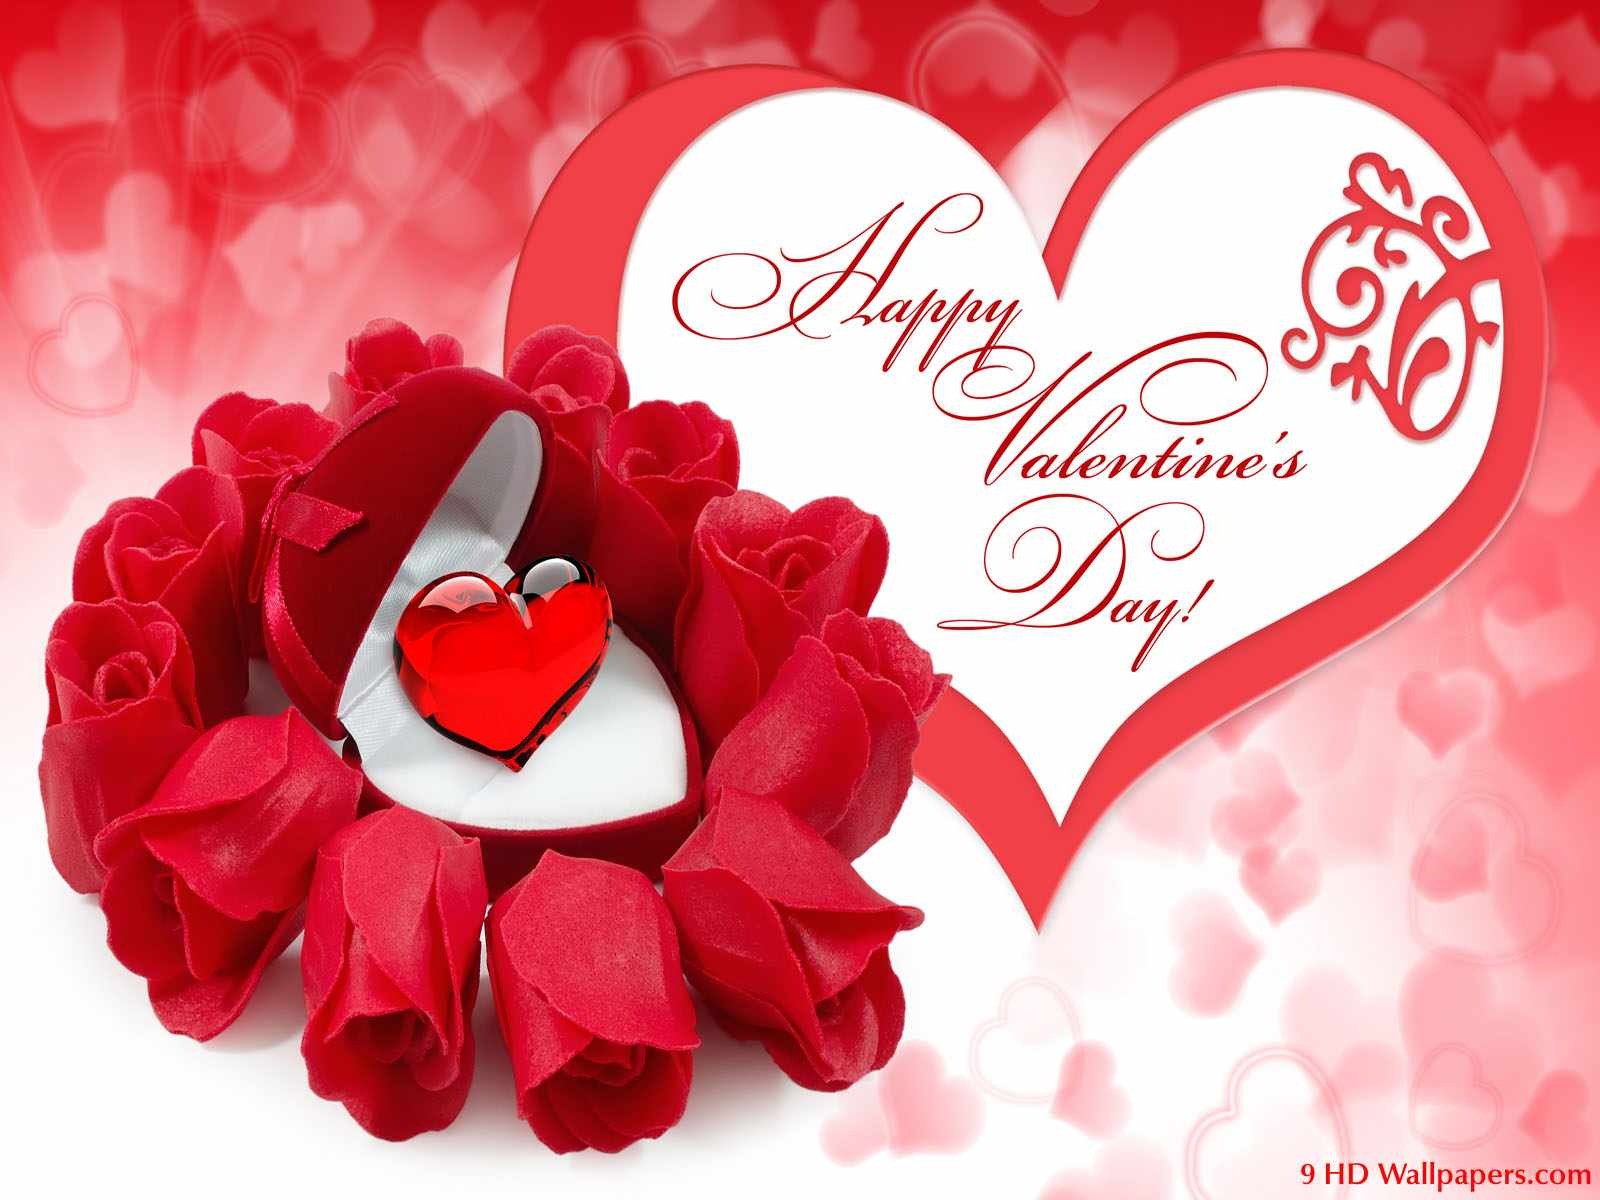 Facebook Sms Valentines Day Greeting Cards For Boyfriend. 1600 x 1200.Boyfriend Valentine's Day Quotes